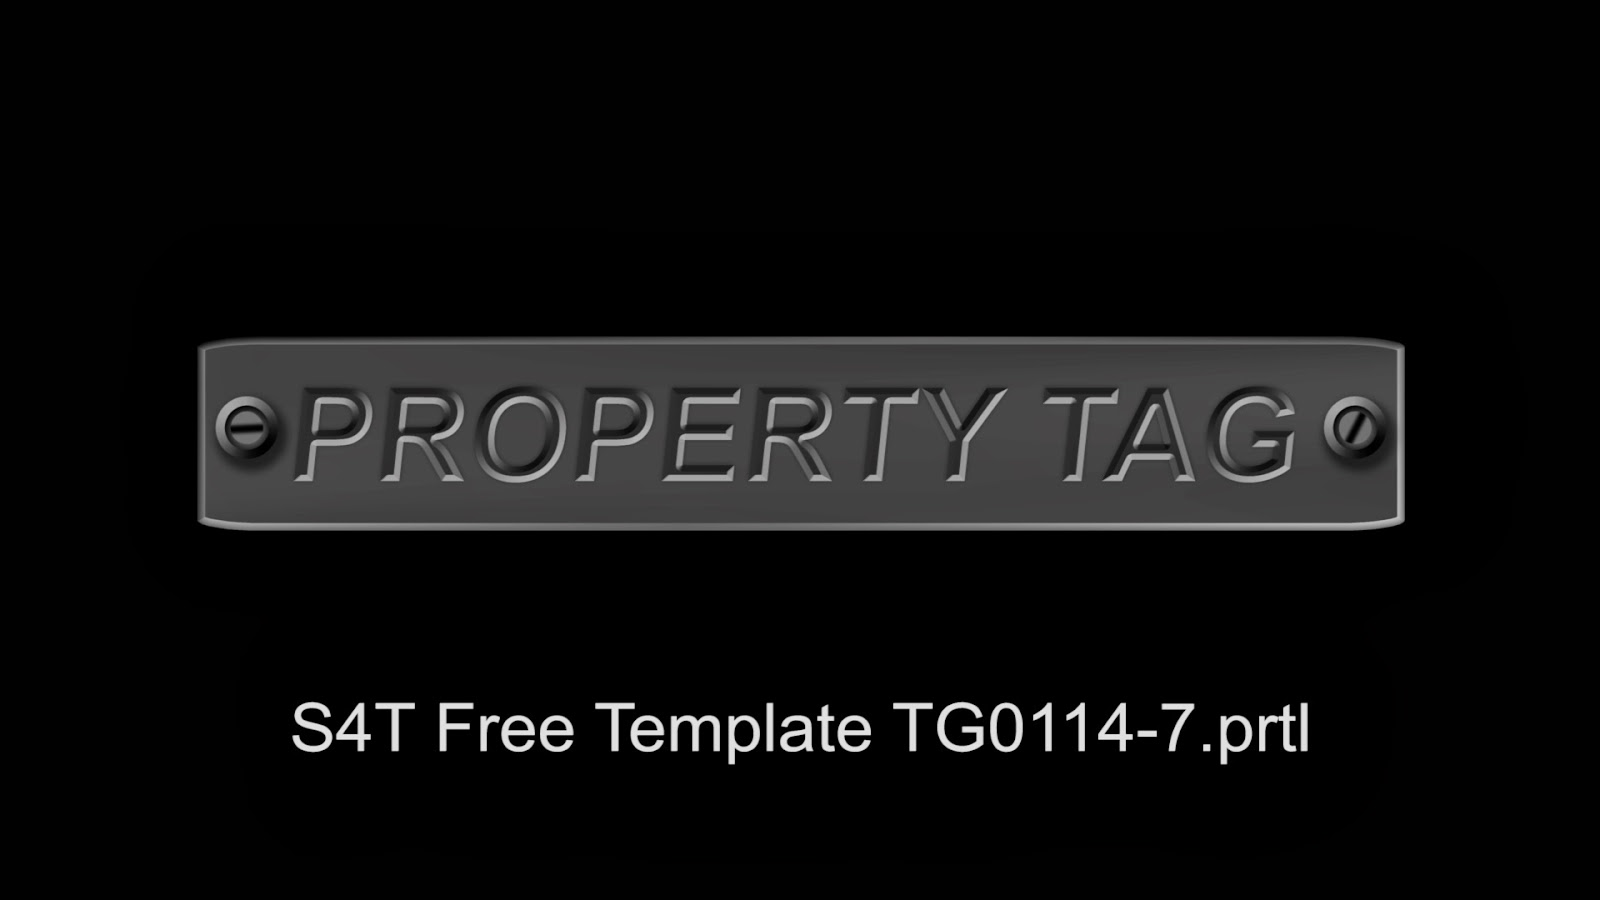 Style4type free s4t premiere pro title template property tag for Premiere pro title templates free